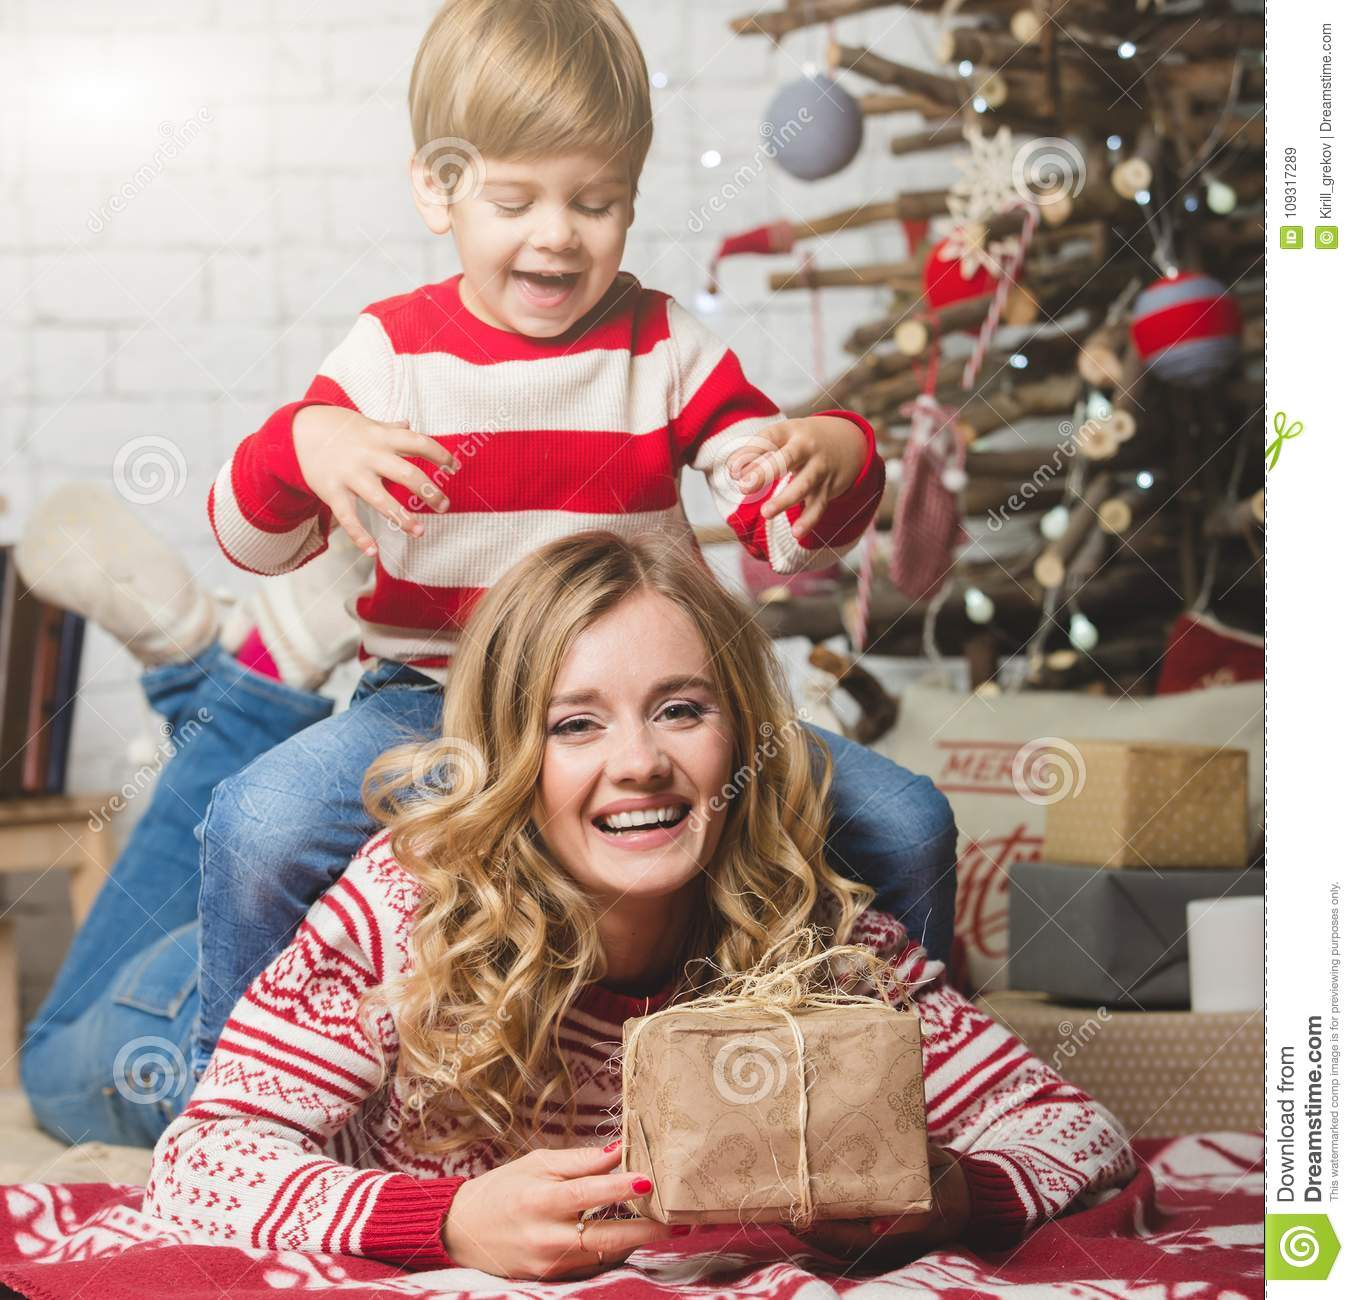 Portrait Of Happy Mother And Son On The Background Of The Christmas Tree In New Year Room The Idea For Postcards Stock Image Image Of Female Birthday 109317289